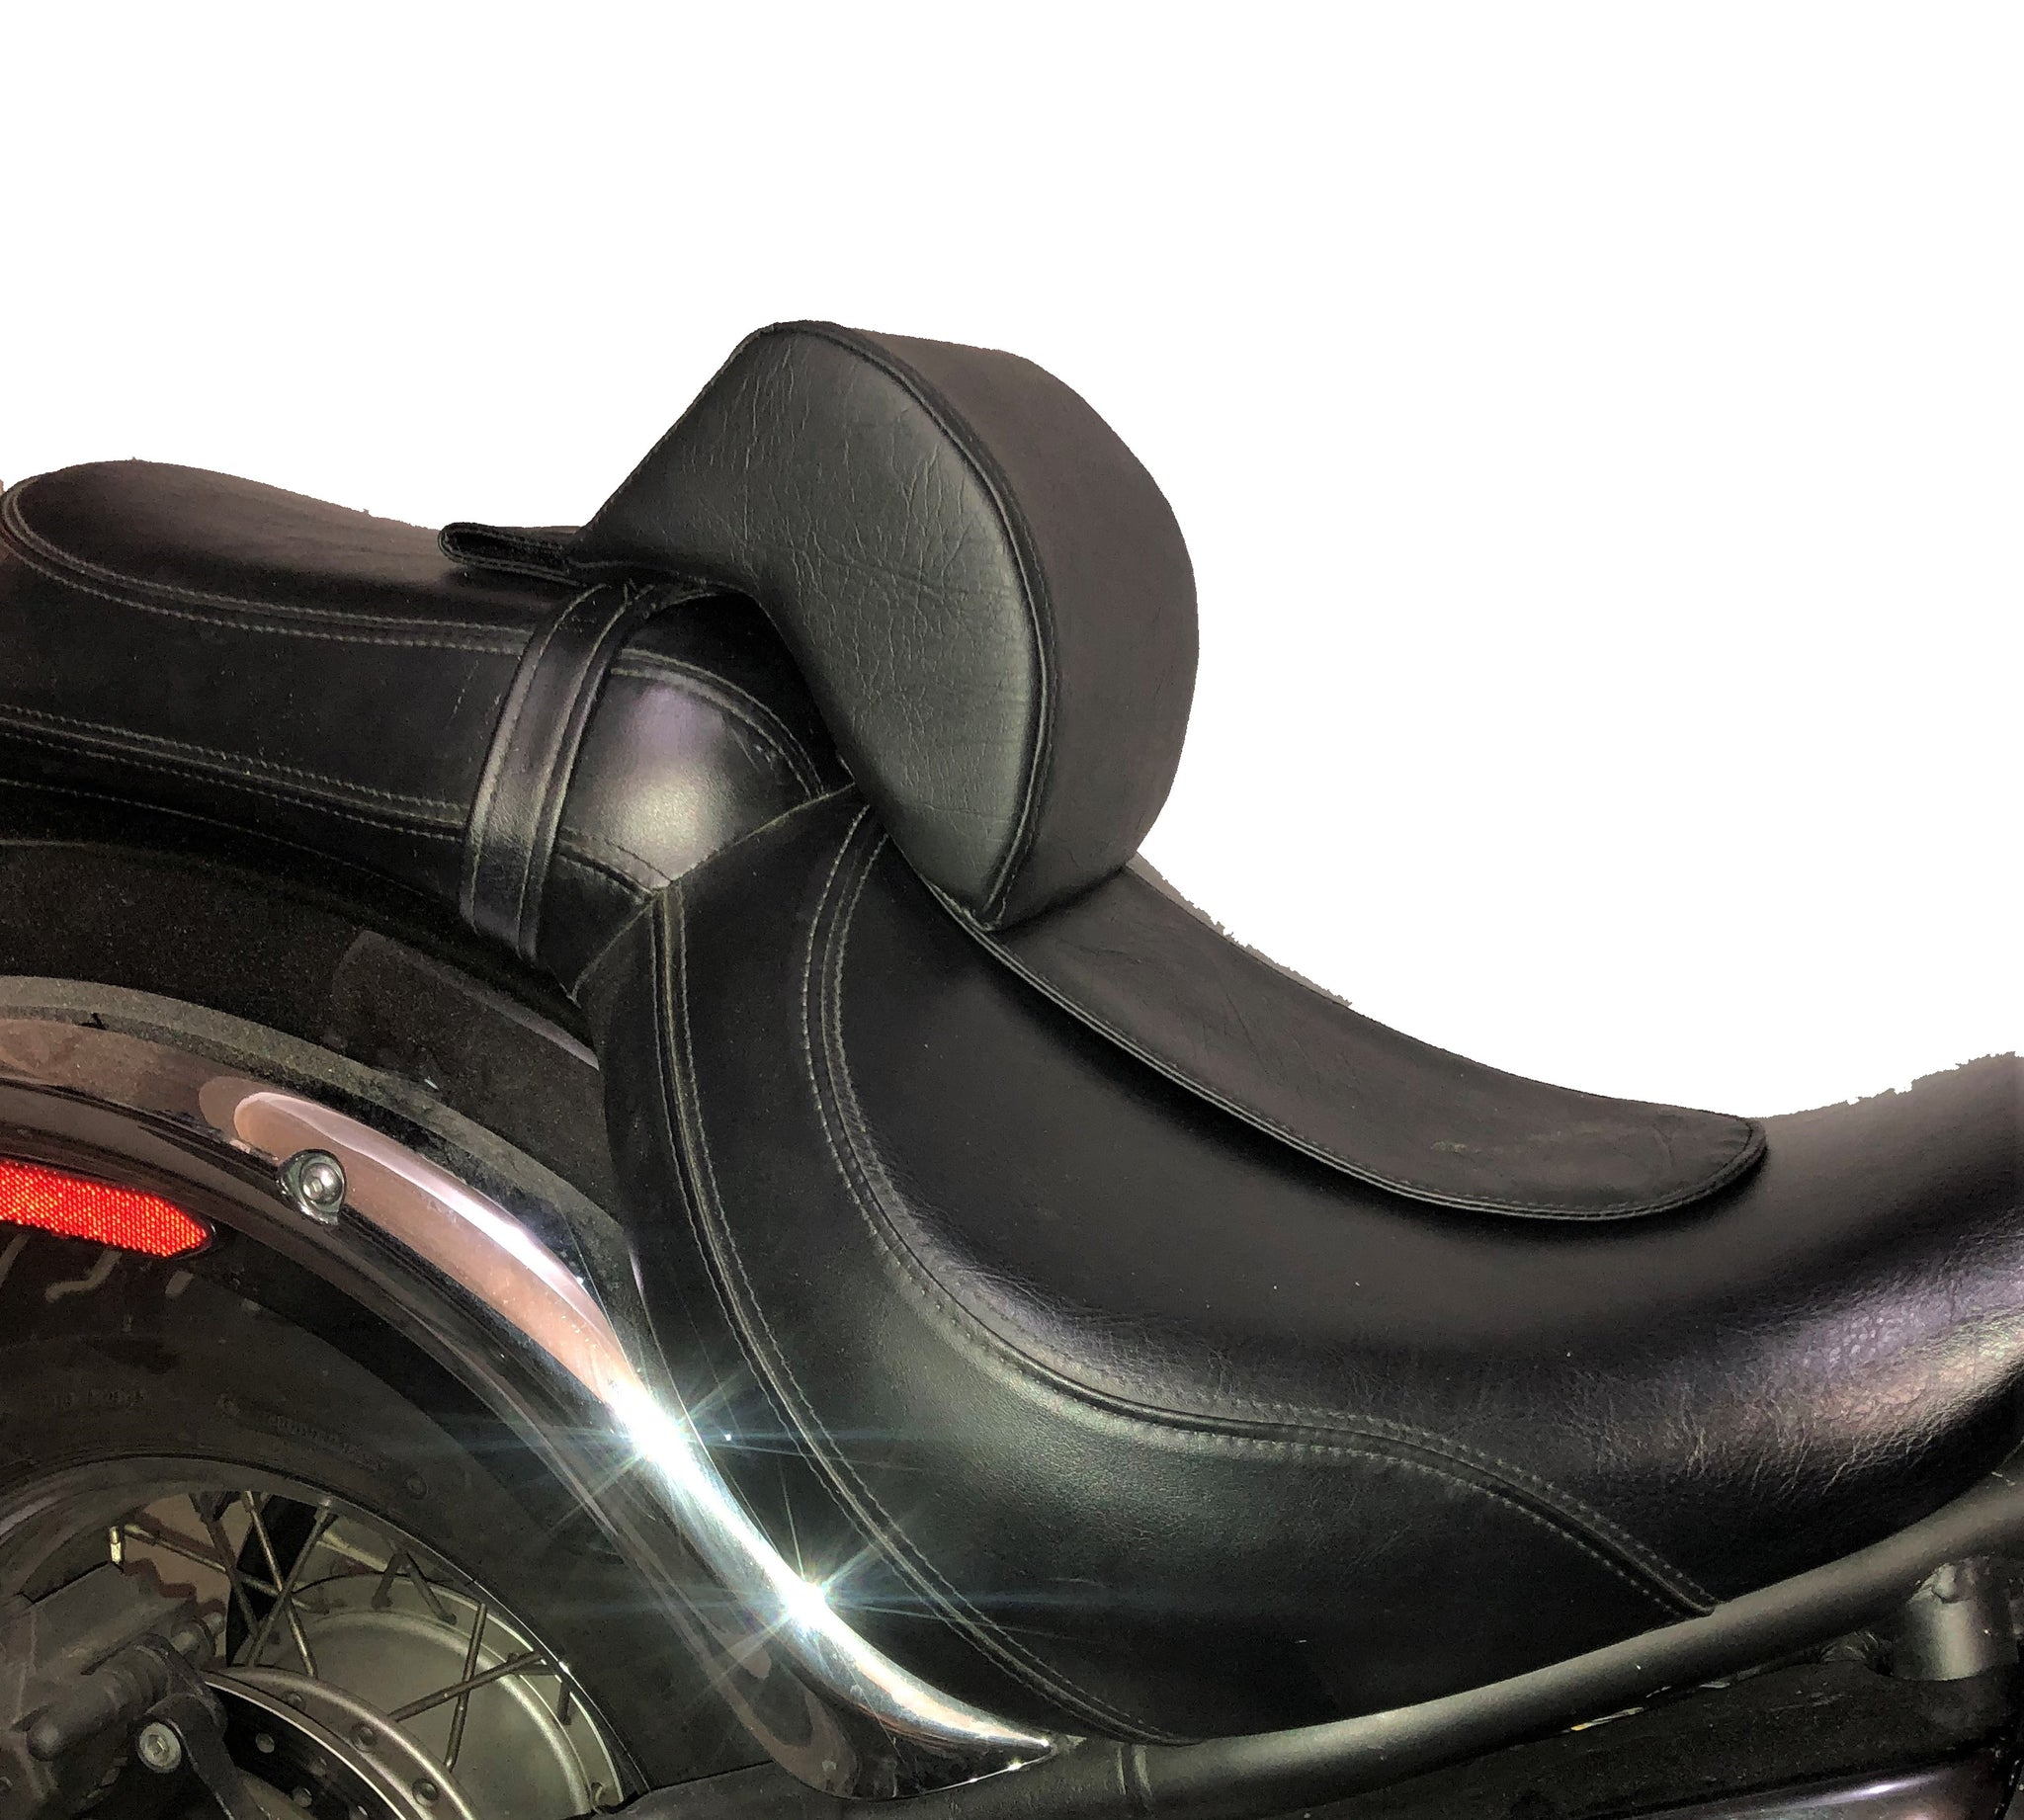 Motorcycle Driver Backrest Lumbar Support Comfort Zone Ride